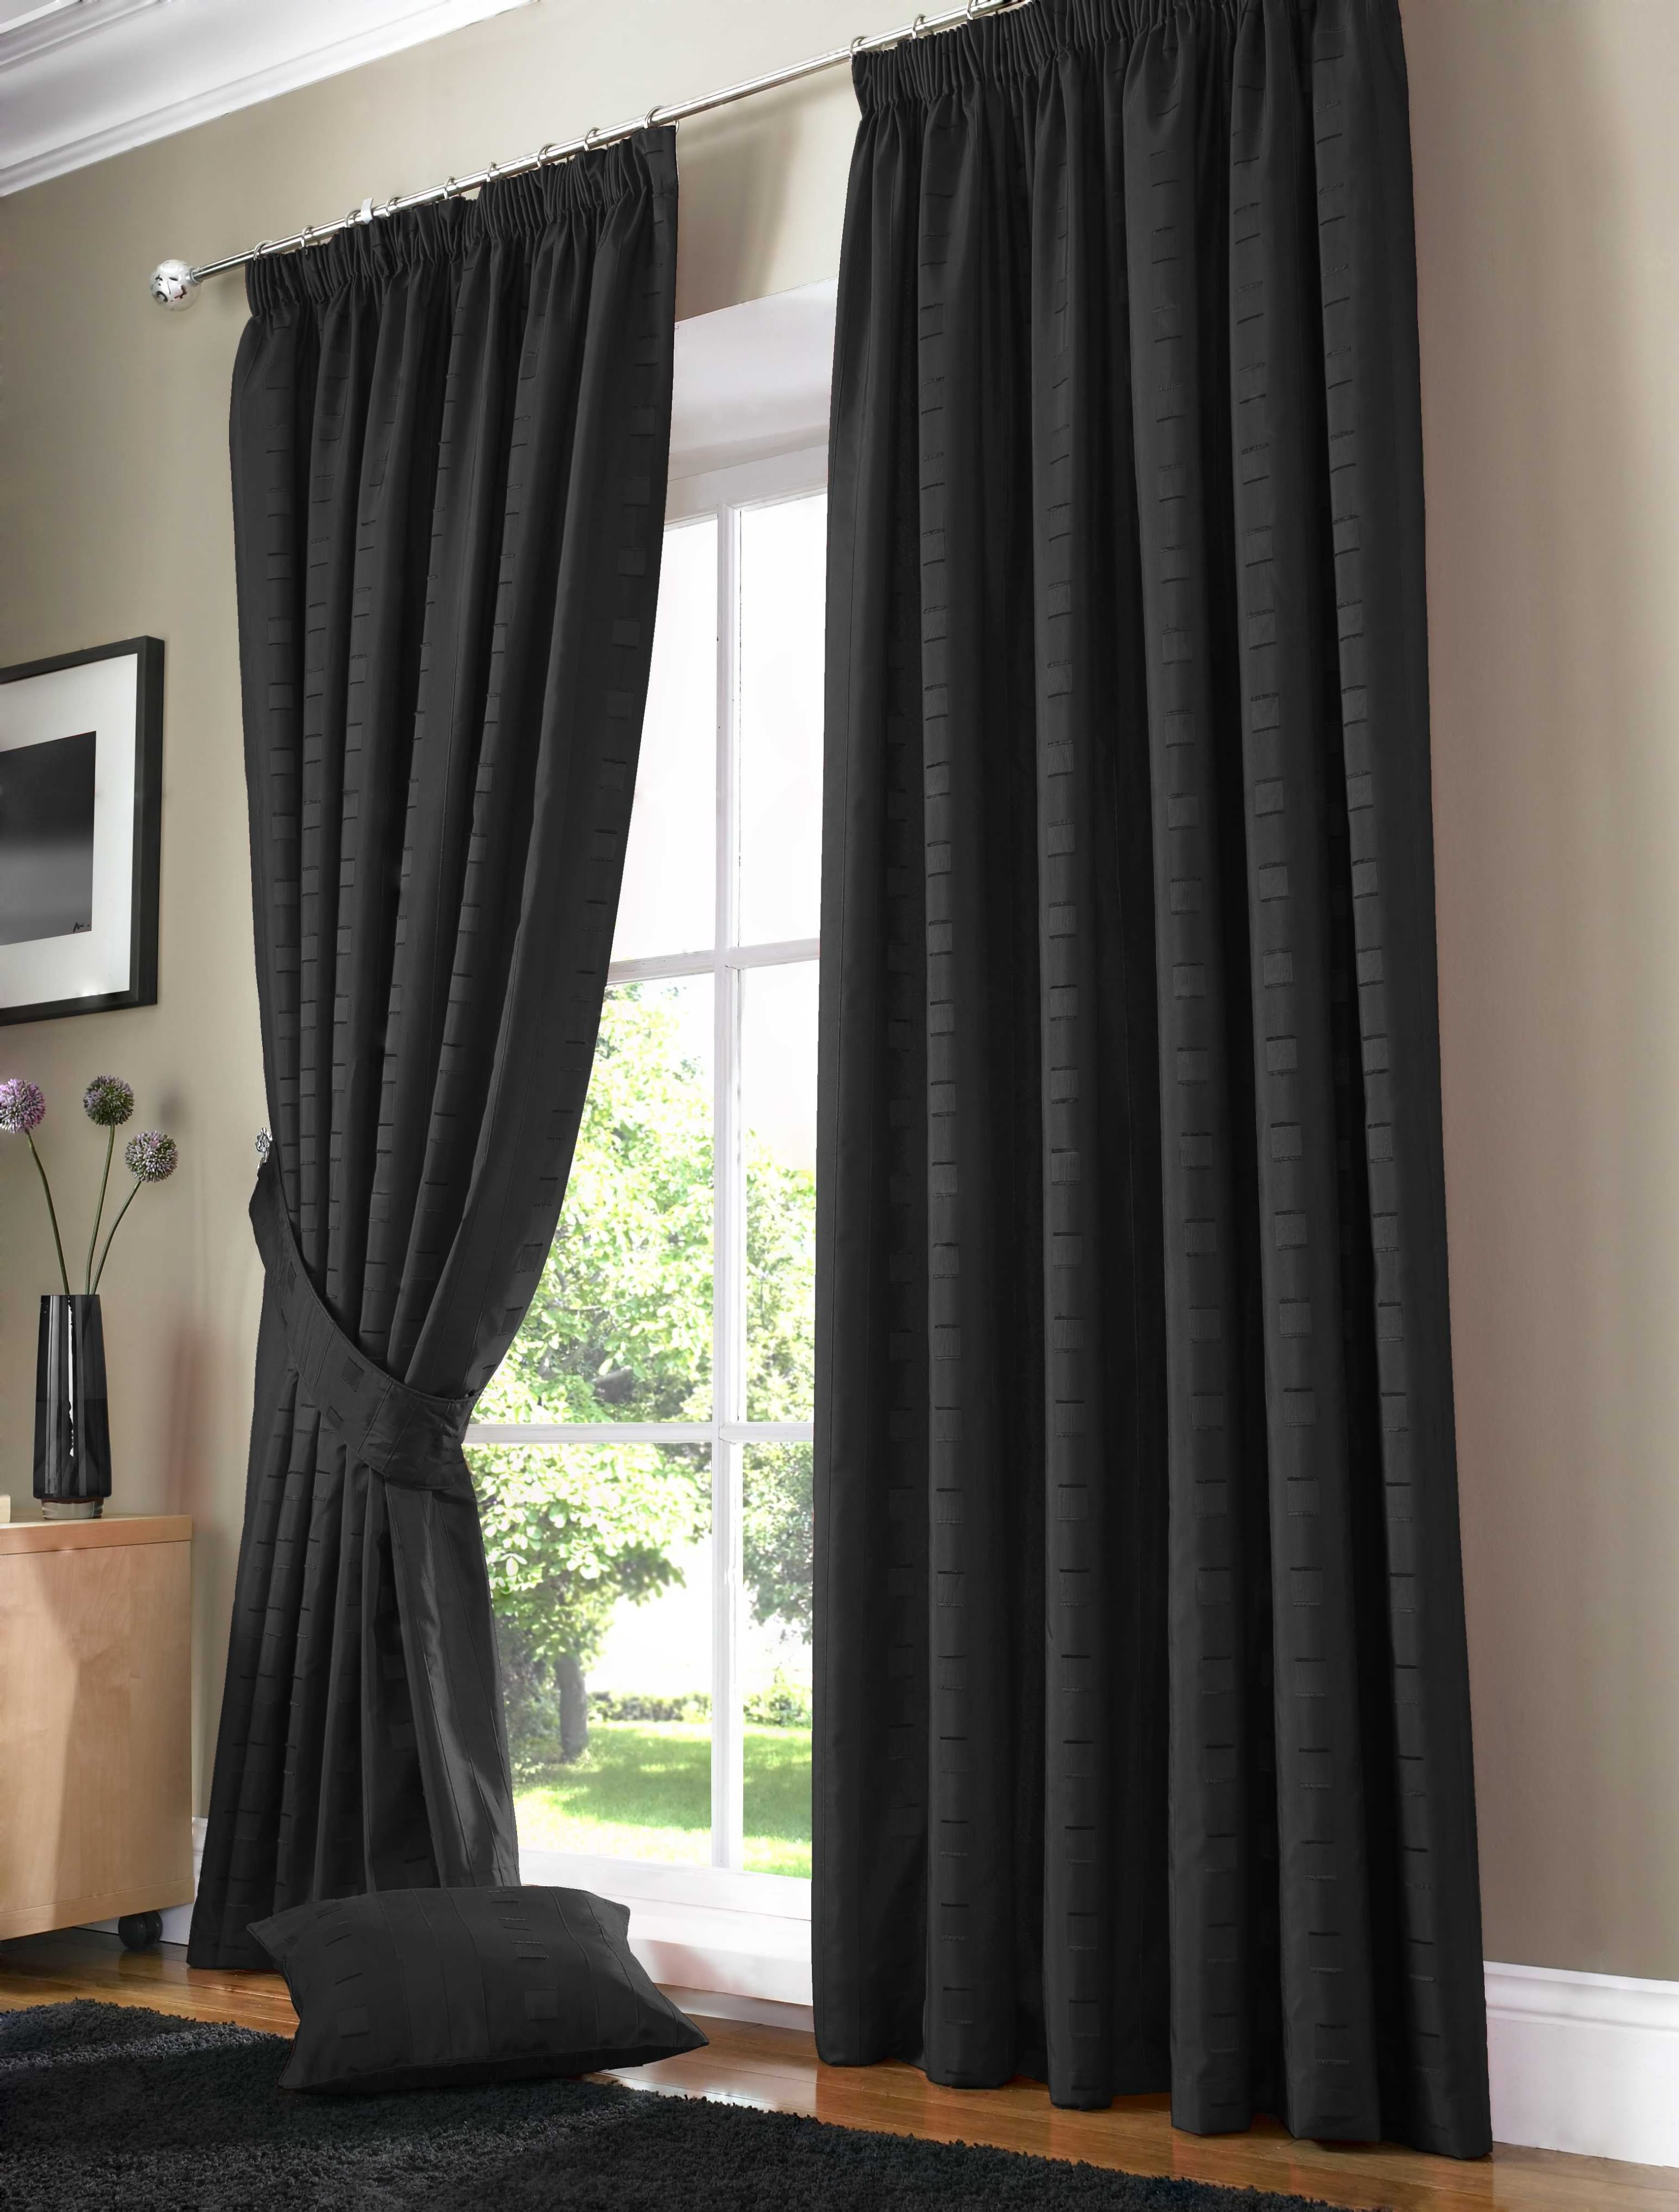 : Dark Patio Door Curtain With Cool Curtains Panels